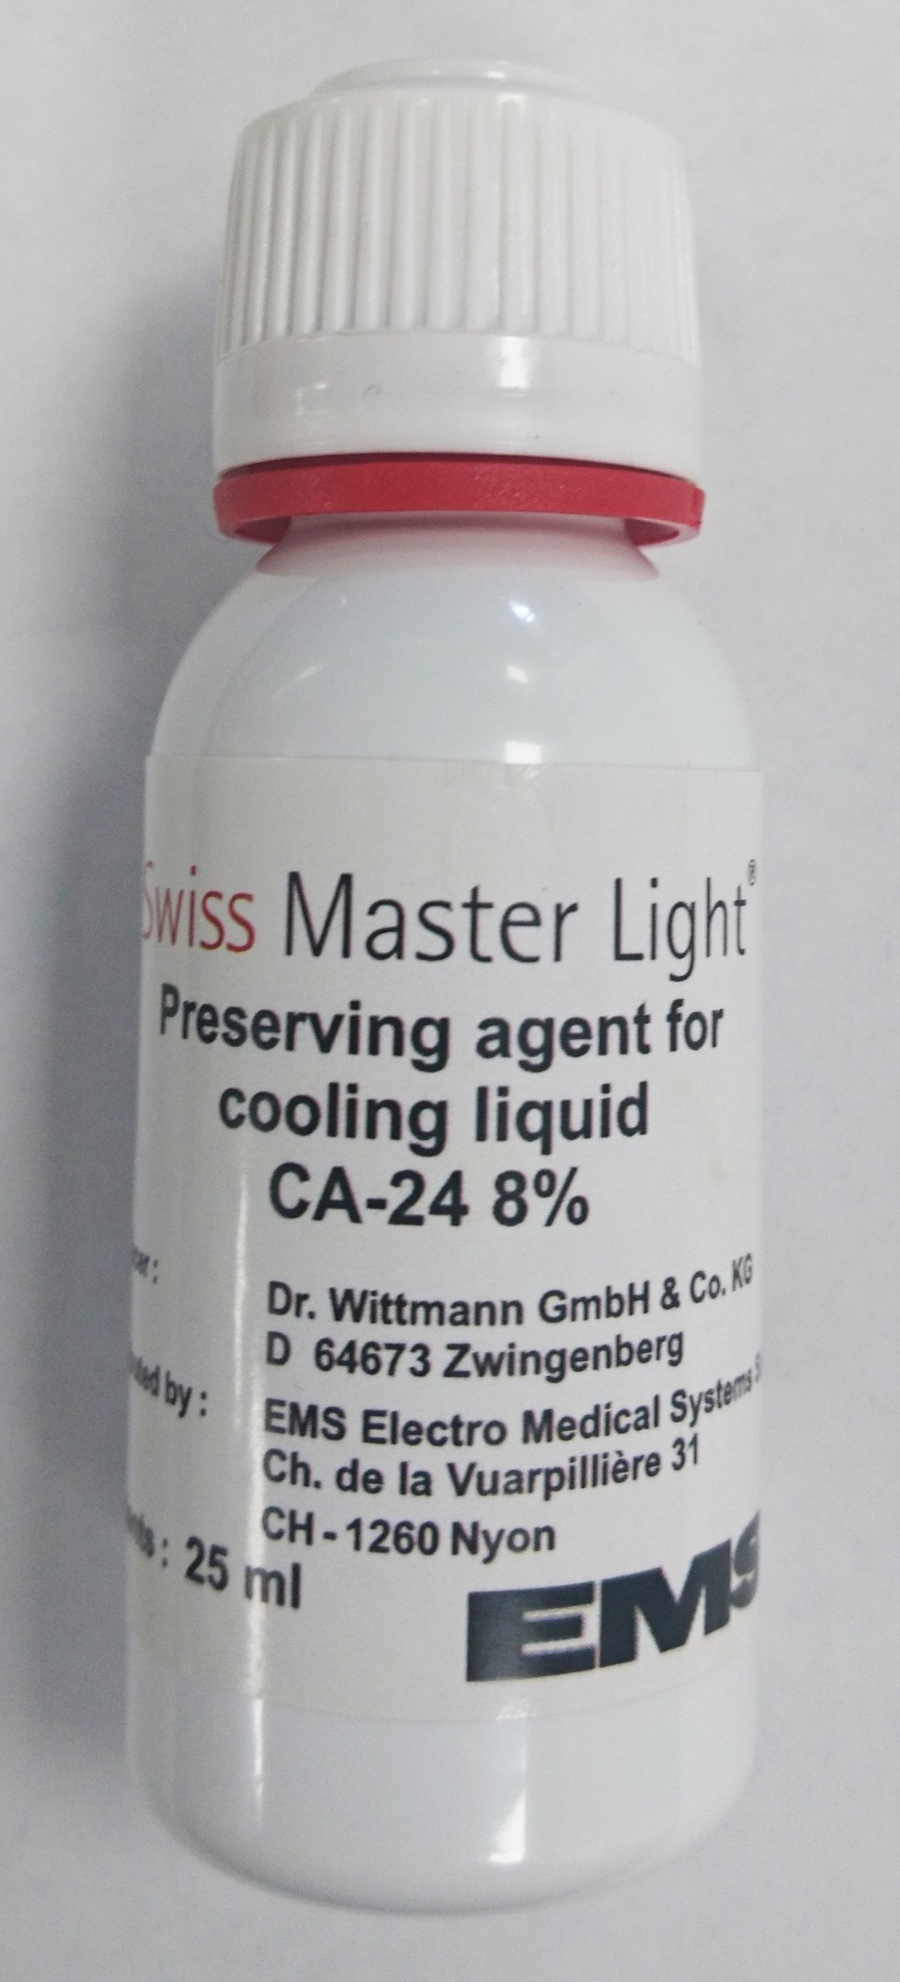 Swiss Master Light CA-24 8% 25ml